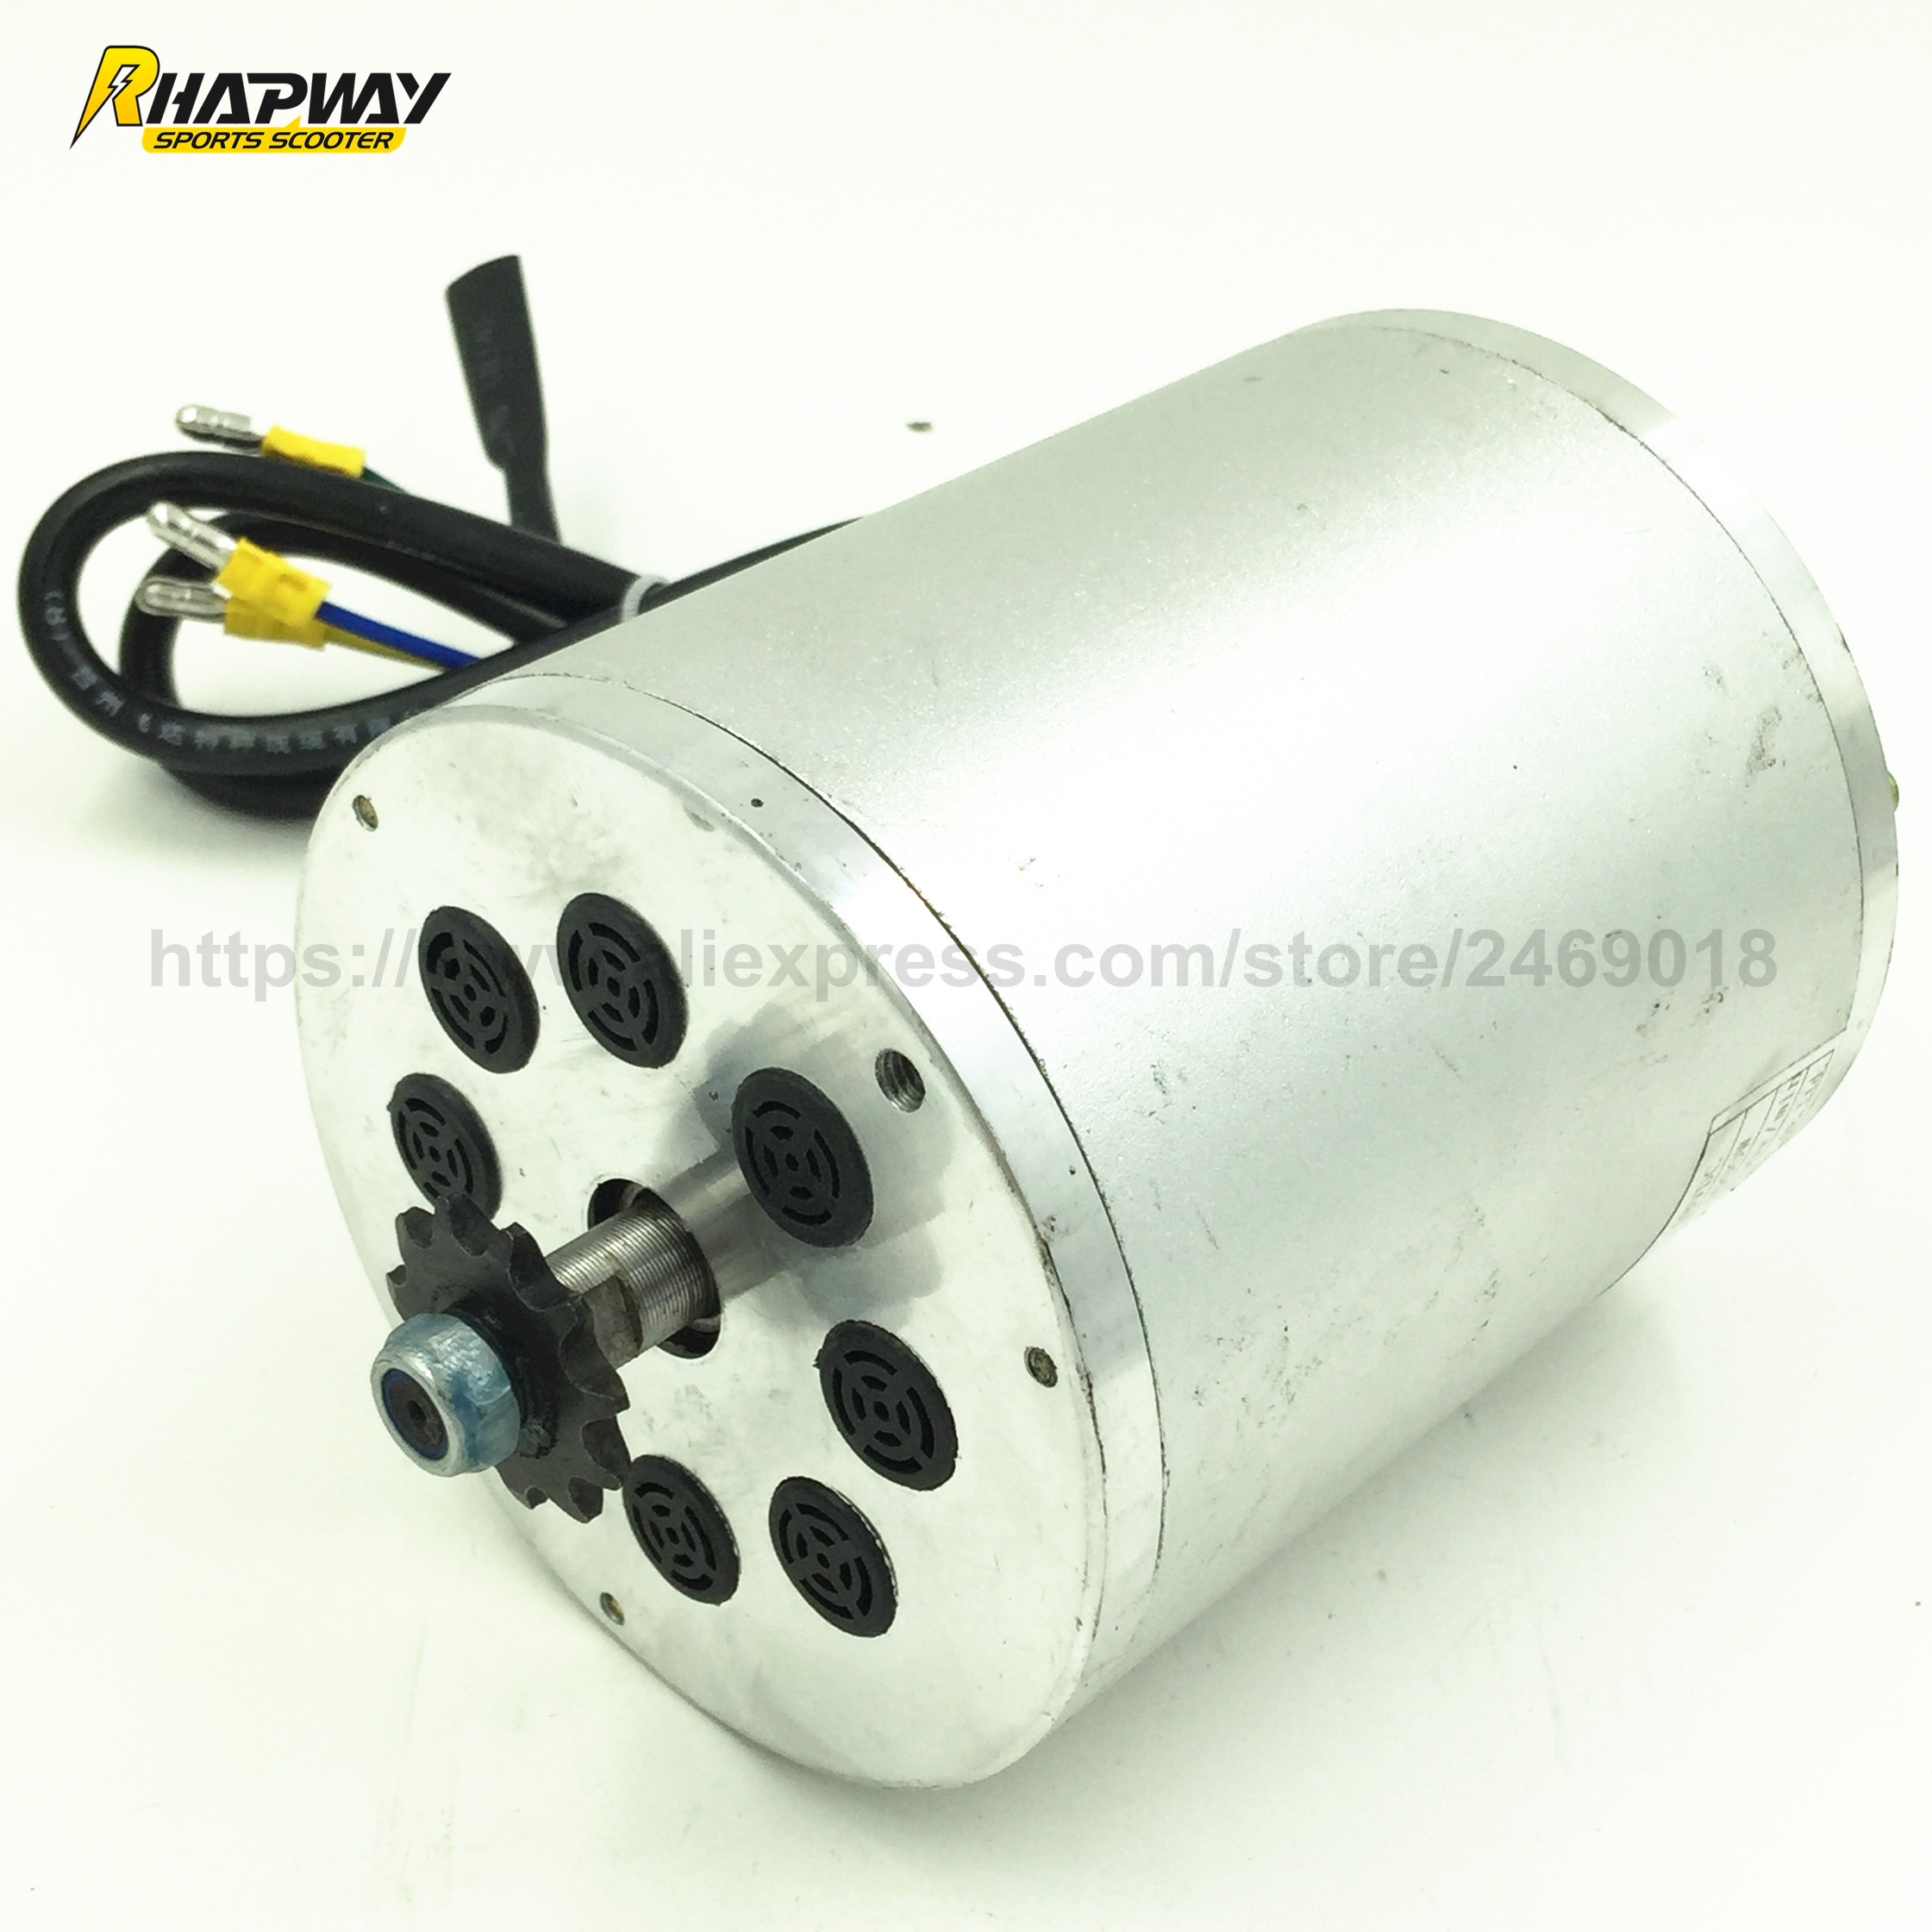 High quality 1600w 48v brushless electric dc motor 1600w for Brushless dc motor suppliers